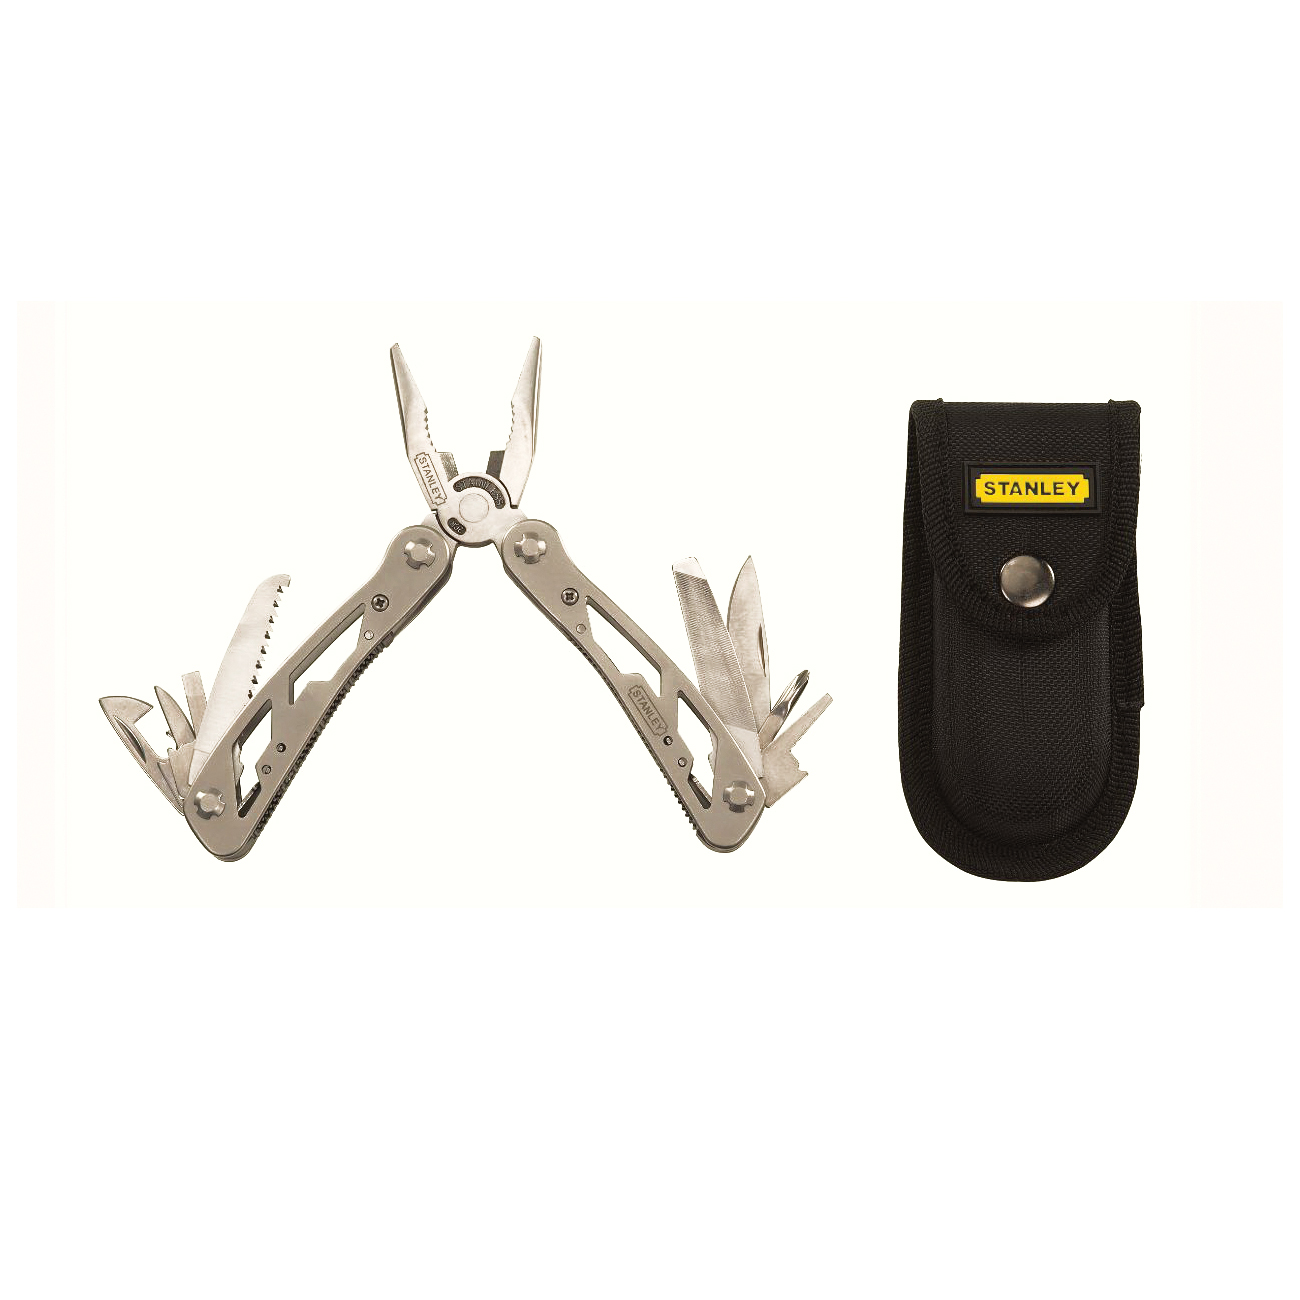 5.11 Tactical 51150 LE EMT Multi Tool, Tumbled Steel